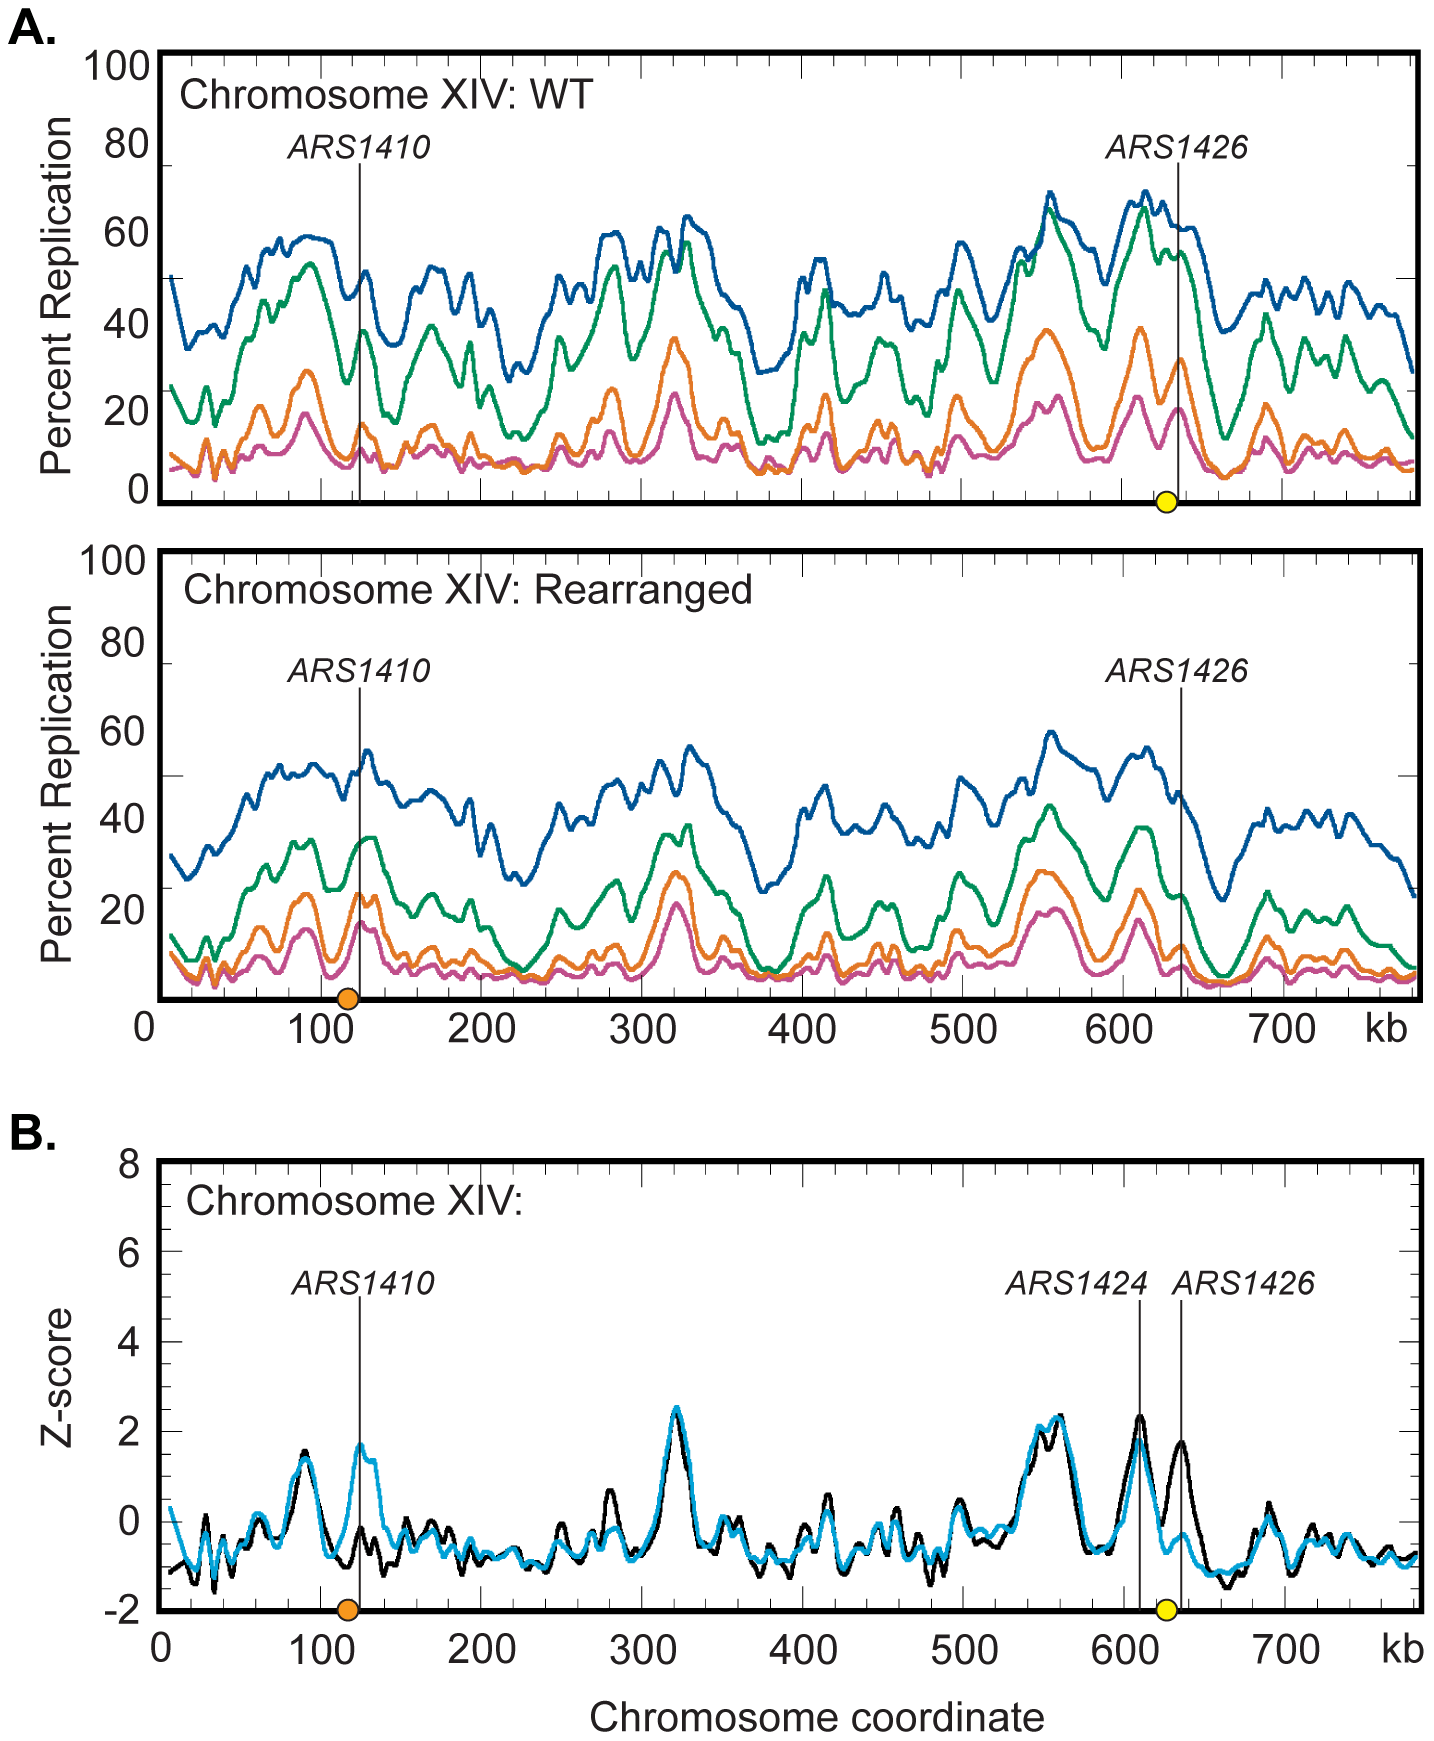 Replication dynamics for chromosome XIV in WT and rearranged strains.